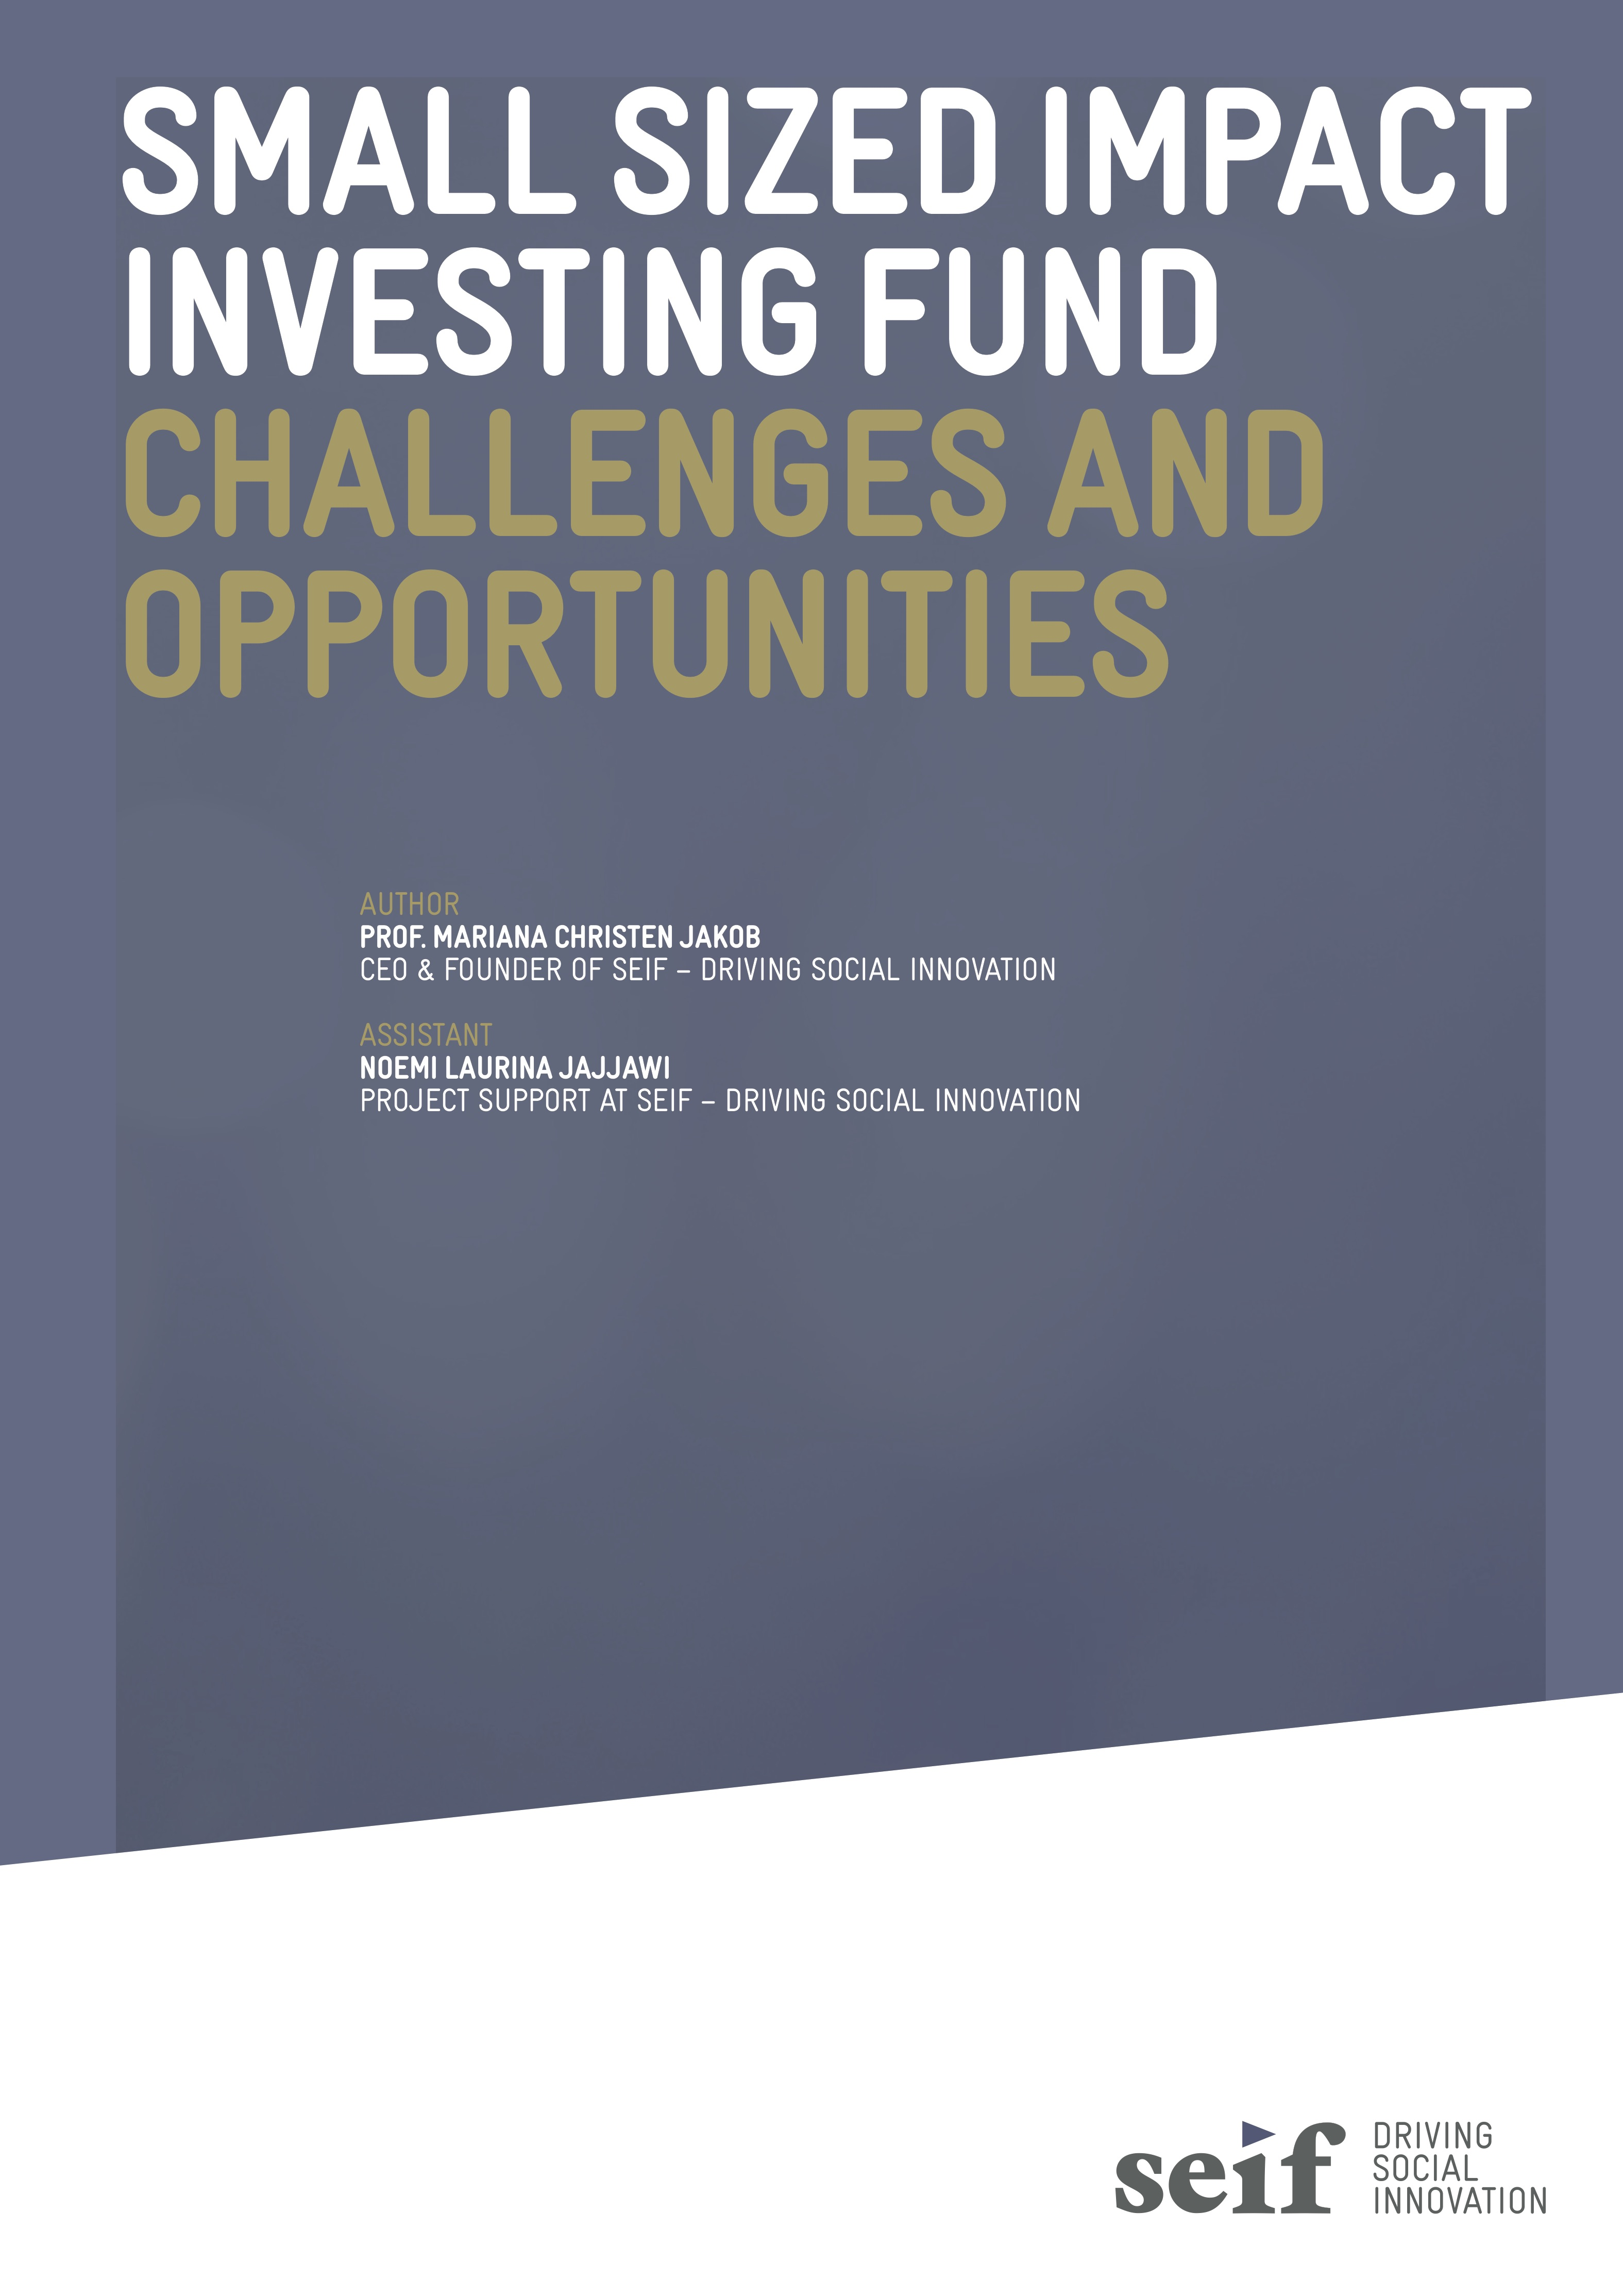 Small Sized Impact Investing Fund - SEIF